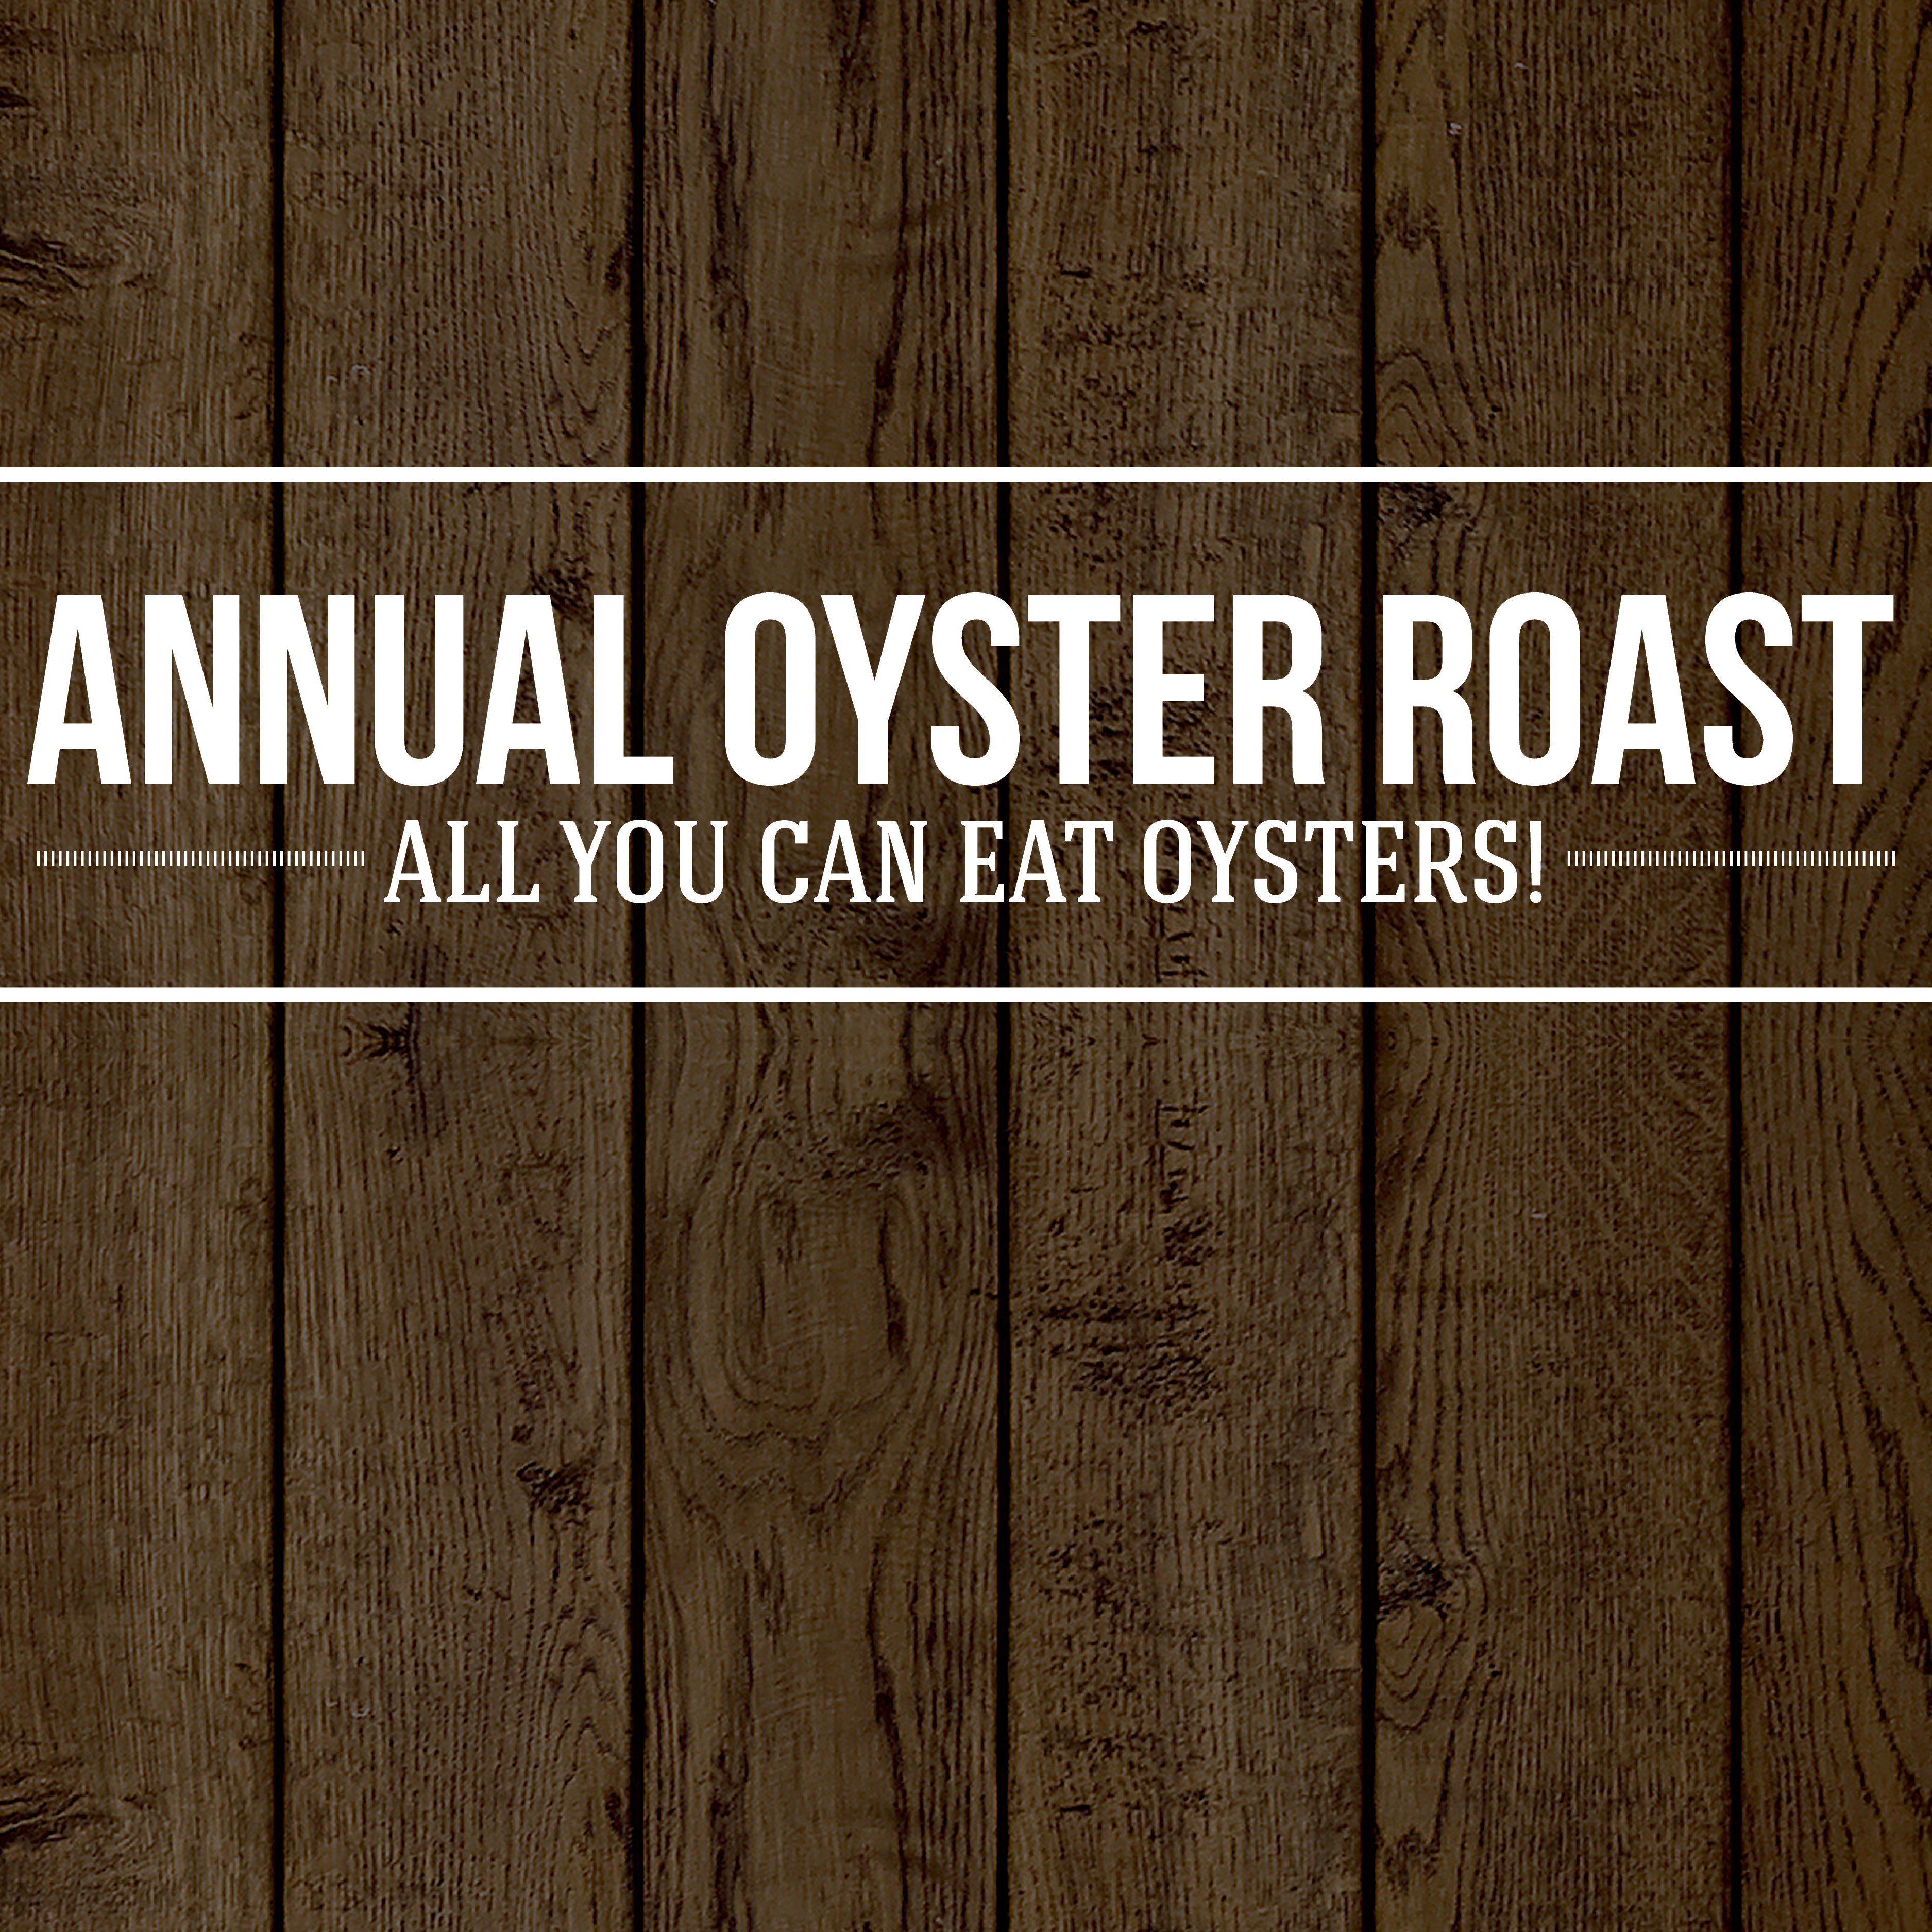 Annual Oyster Roast all you can eat oysters at St Johns Golf and Country Club in St Augustine, FL